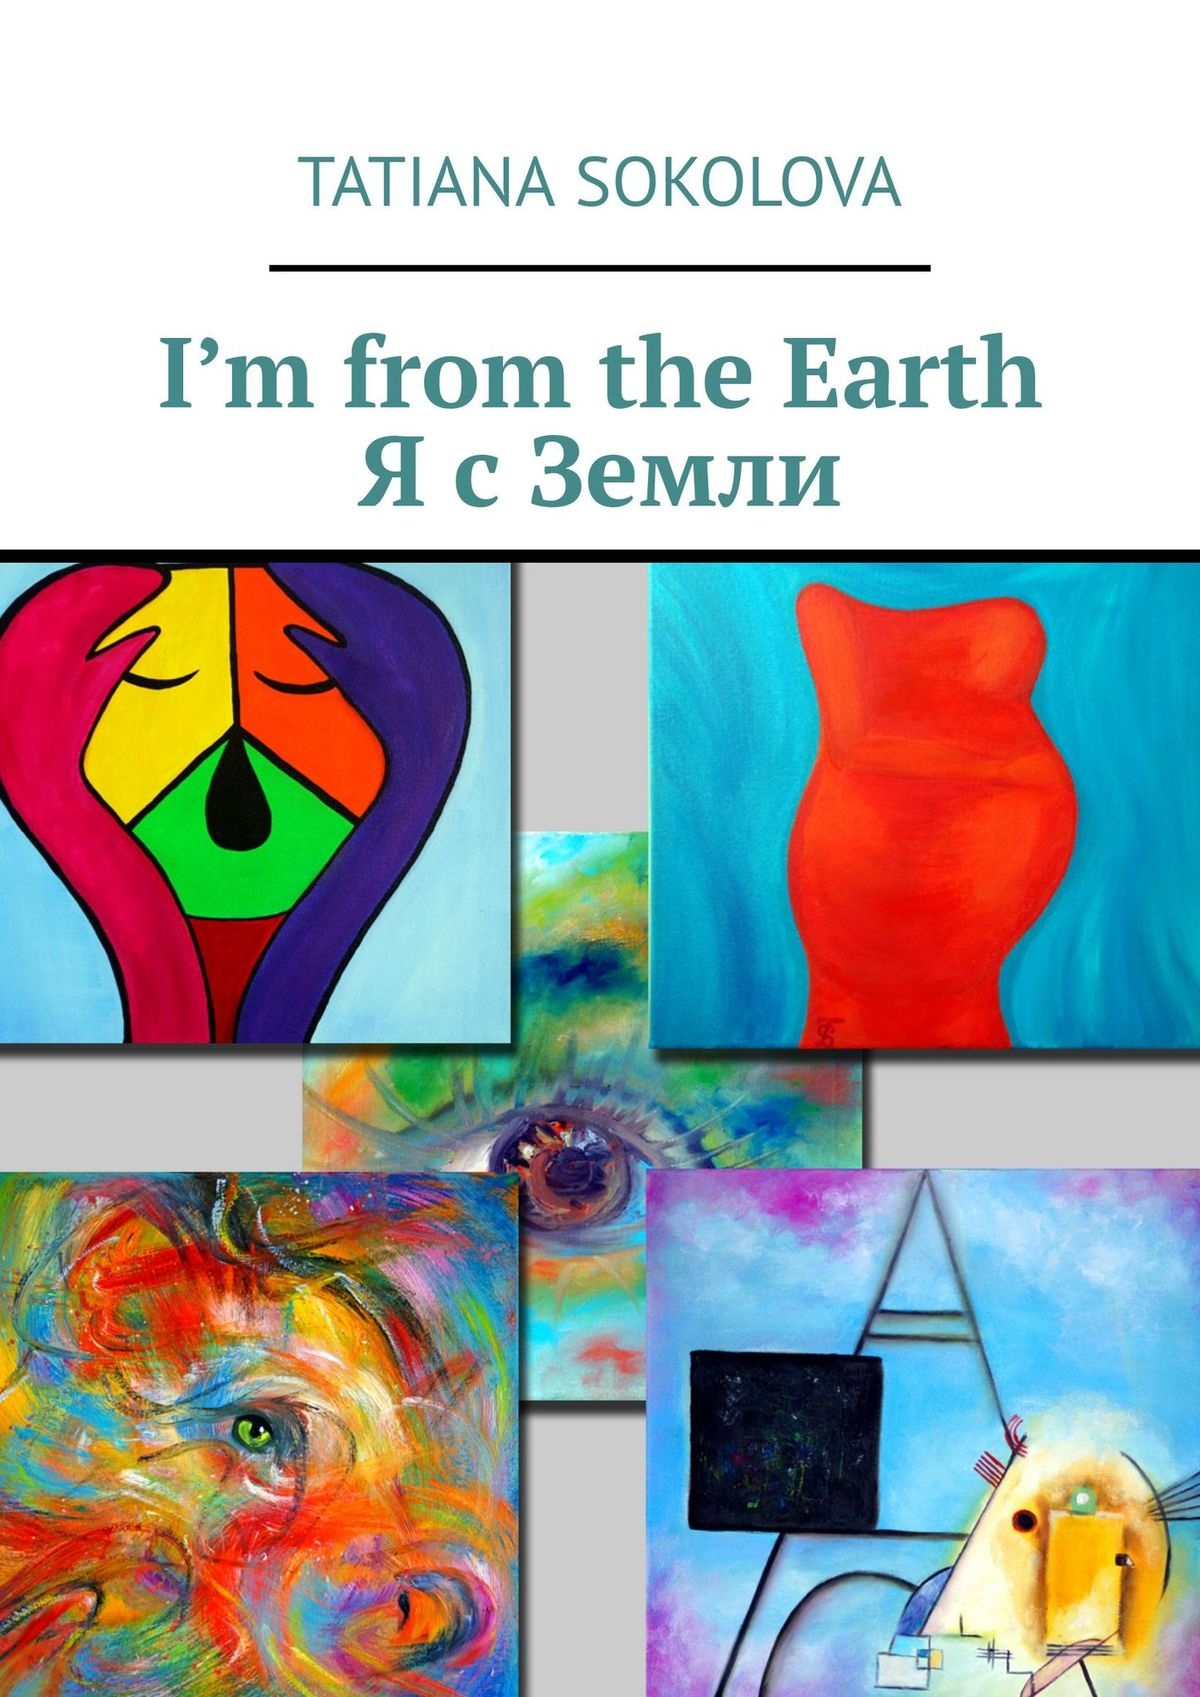 Татьяна Соколова I'm from Earth. Я сЗемли 20pcs lot free shipping mj15023 mj15023g to 3 new and original goods own stock images not network pictures